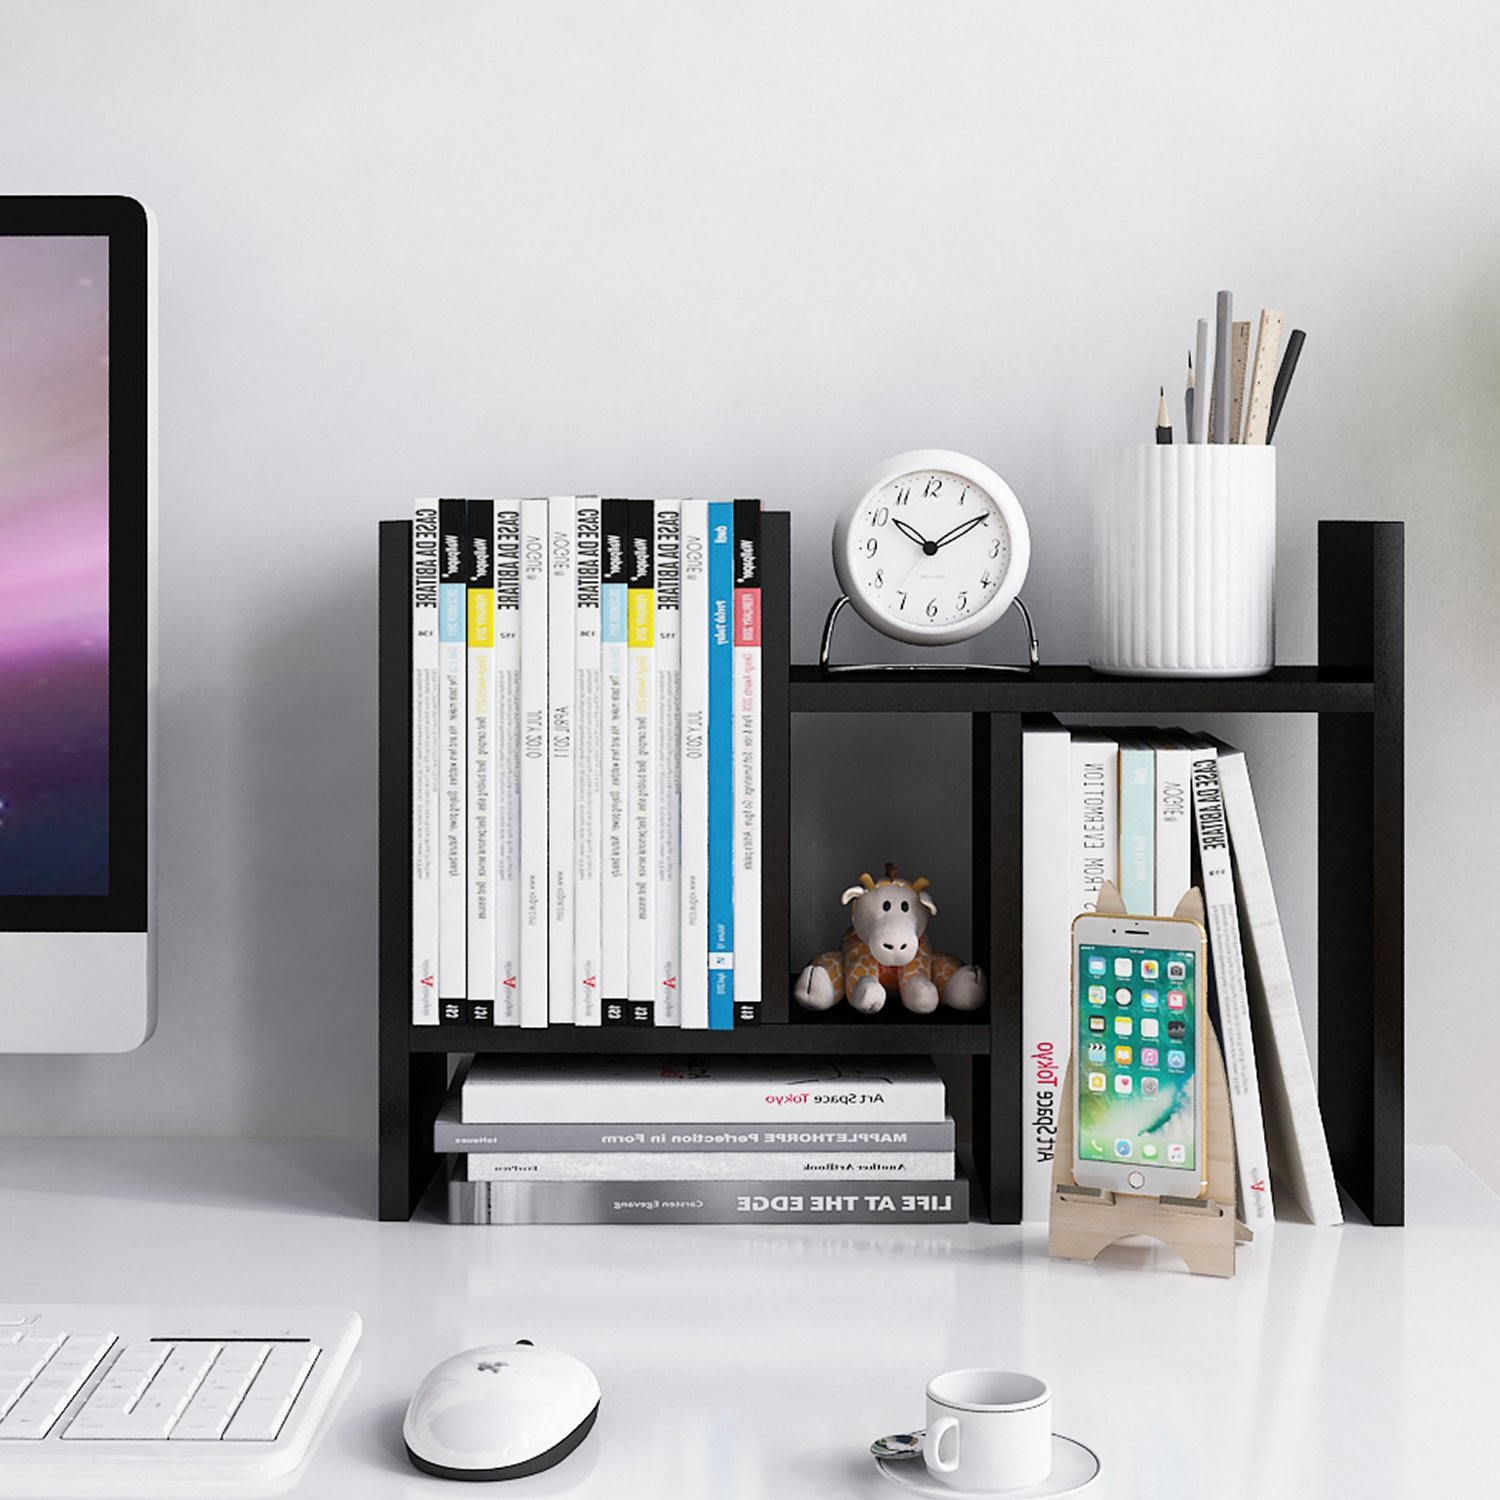 Jerry & Maggie - Desktop Organizer Office Storage Rack Adjustable Wood Display Shelf - Free Style Double H Display - True Natural Stand Shelf - Black by Jerry & Maggie